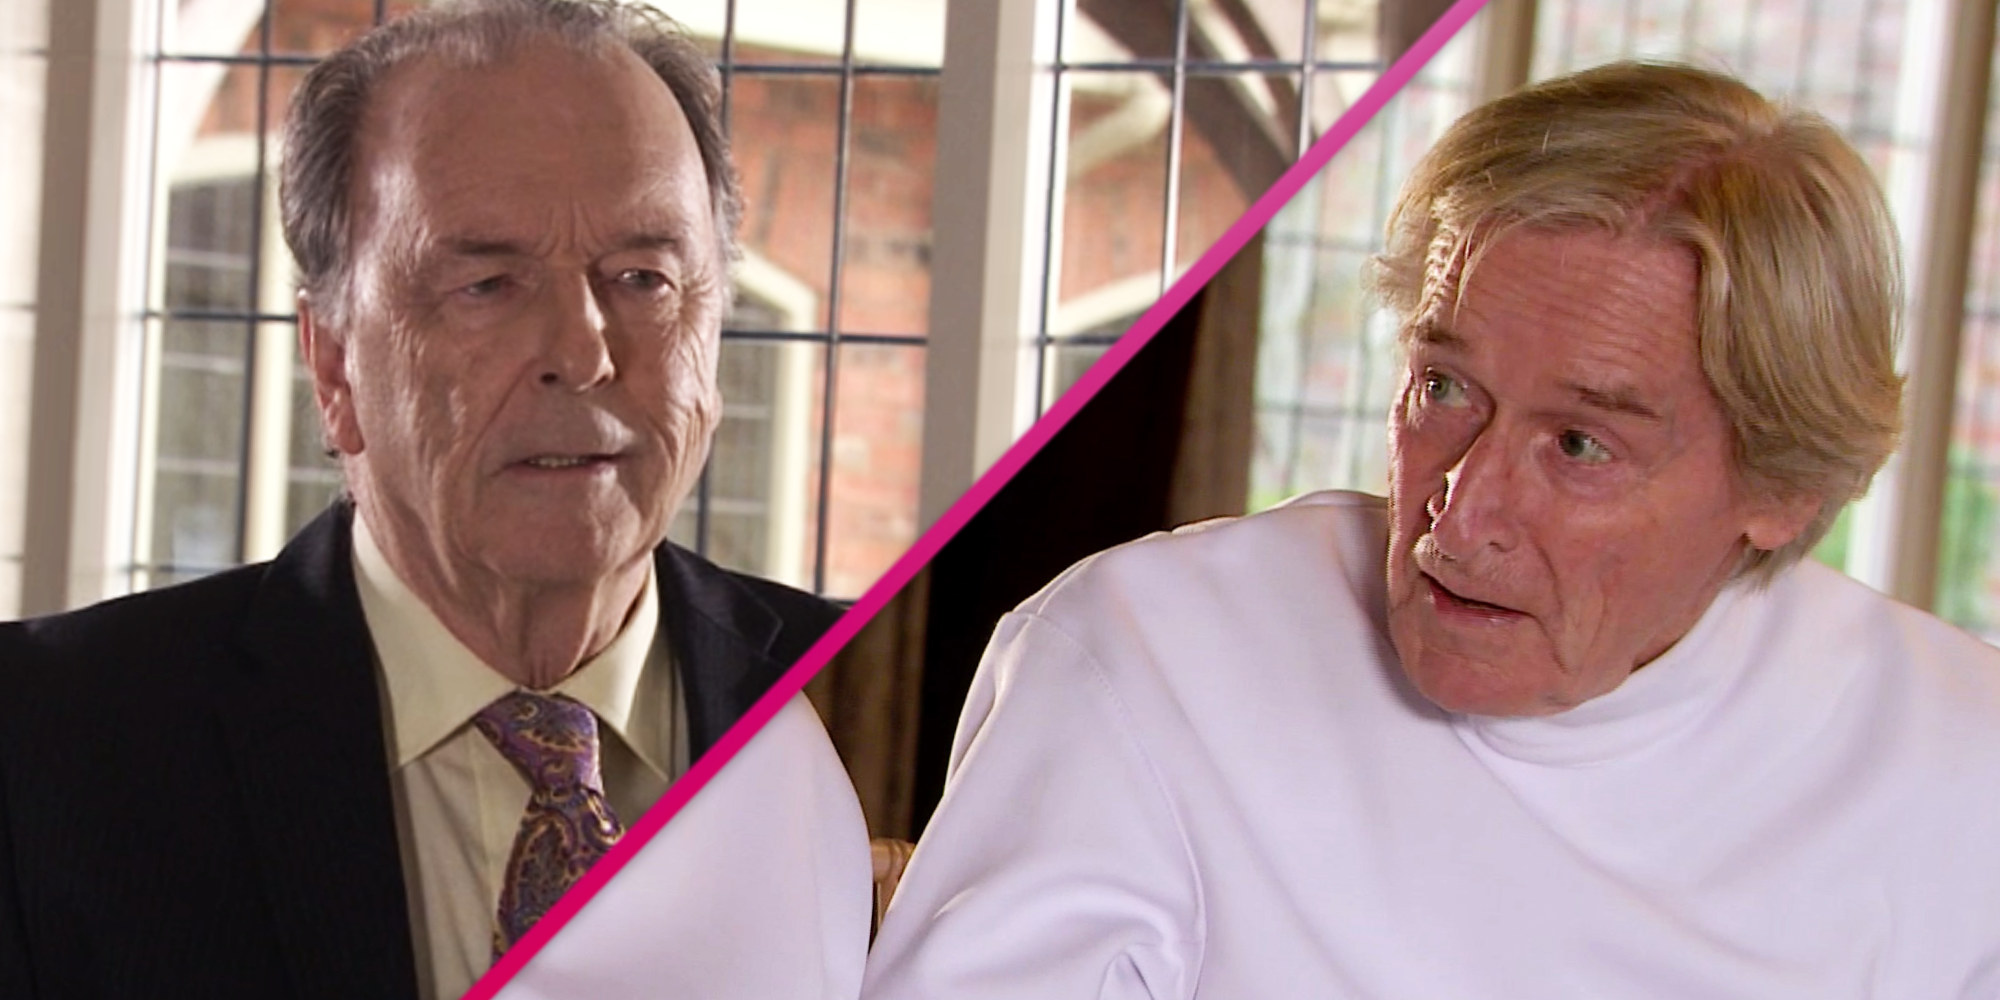 Coronation Street SPOILERS: Norris and Ken discover the truth about Charles